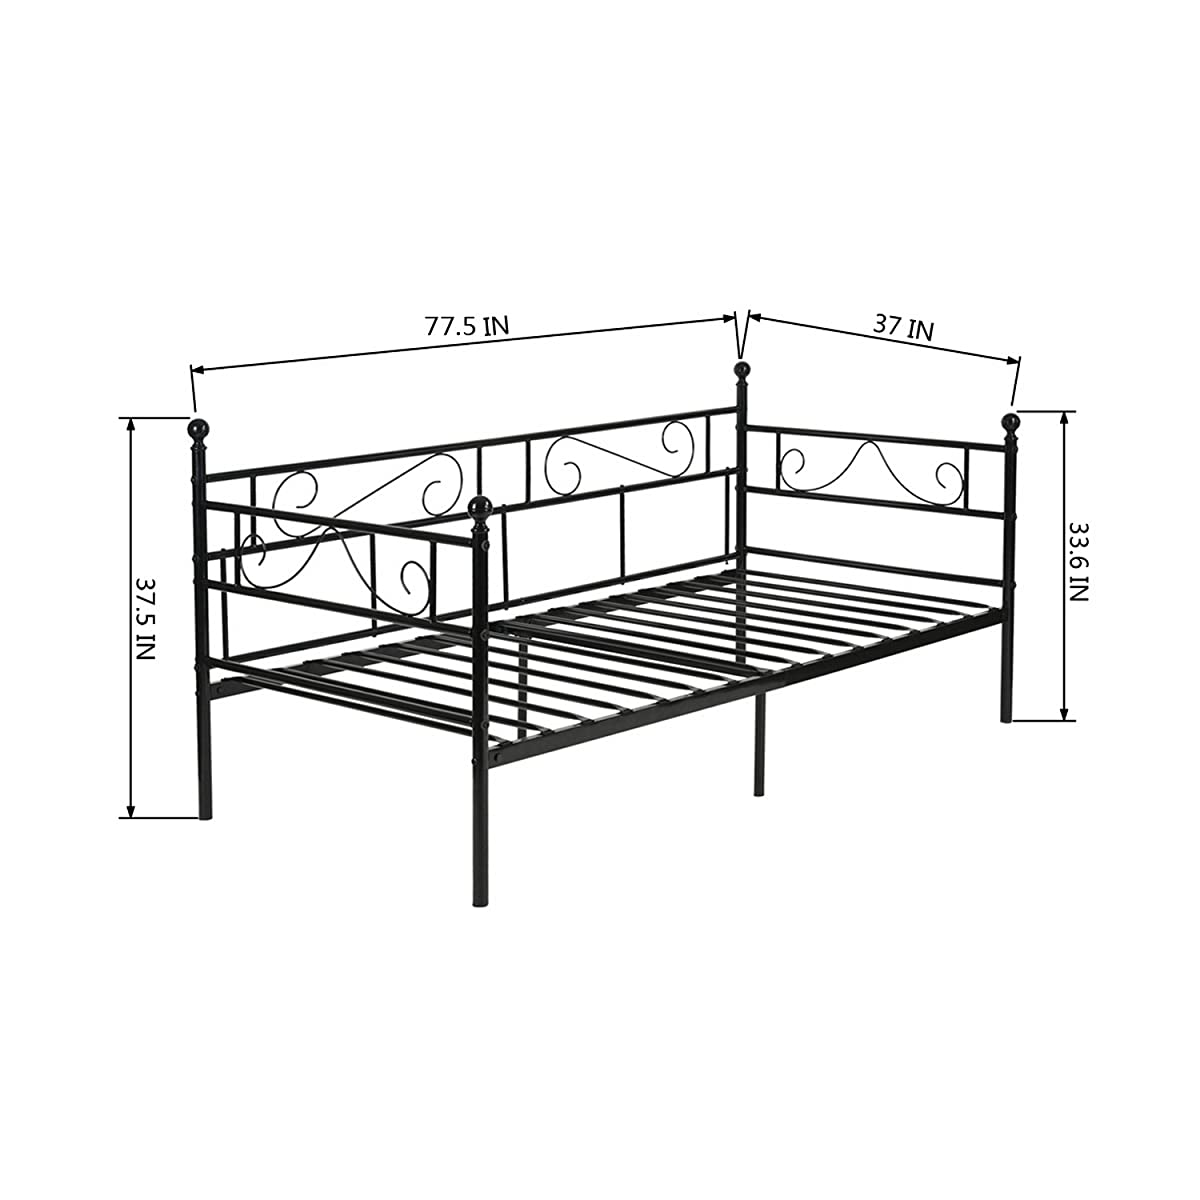 GreenForest Daybed Twin Bed Frame with Headboard and Stable Steel Slats Mattress Platform Base Boxspring Replacement Easy Assembly for Living Room Guest Room Black ¡­